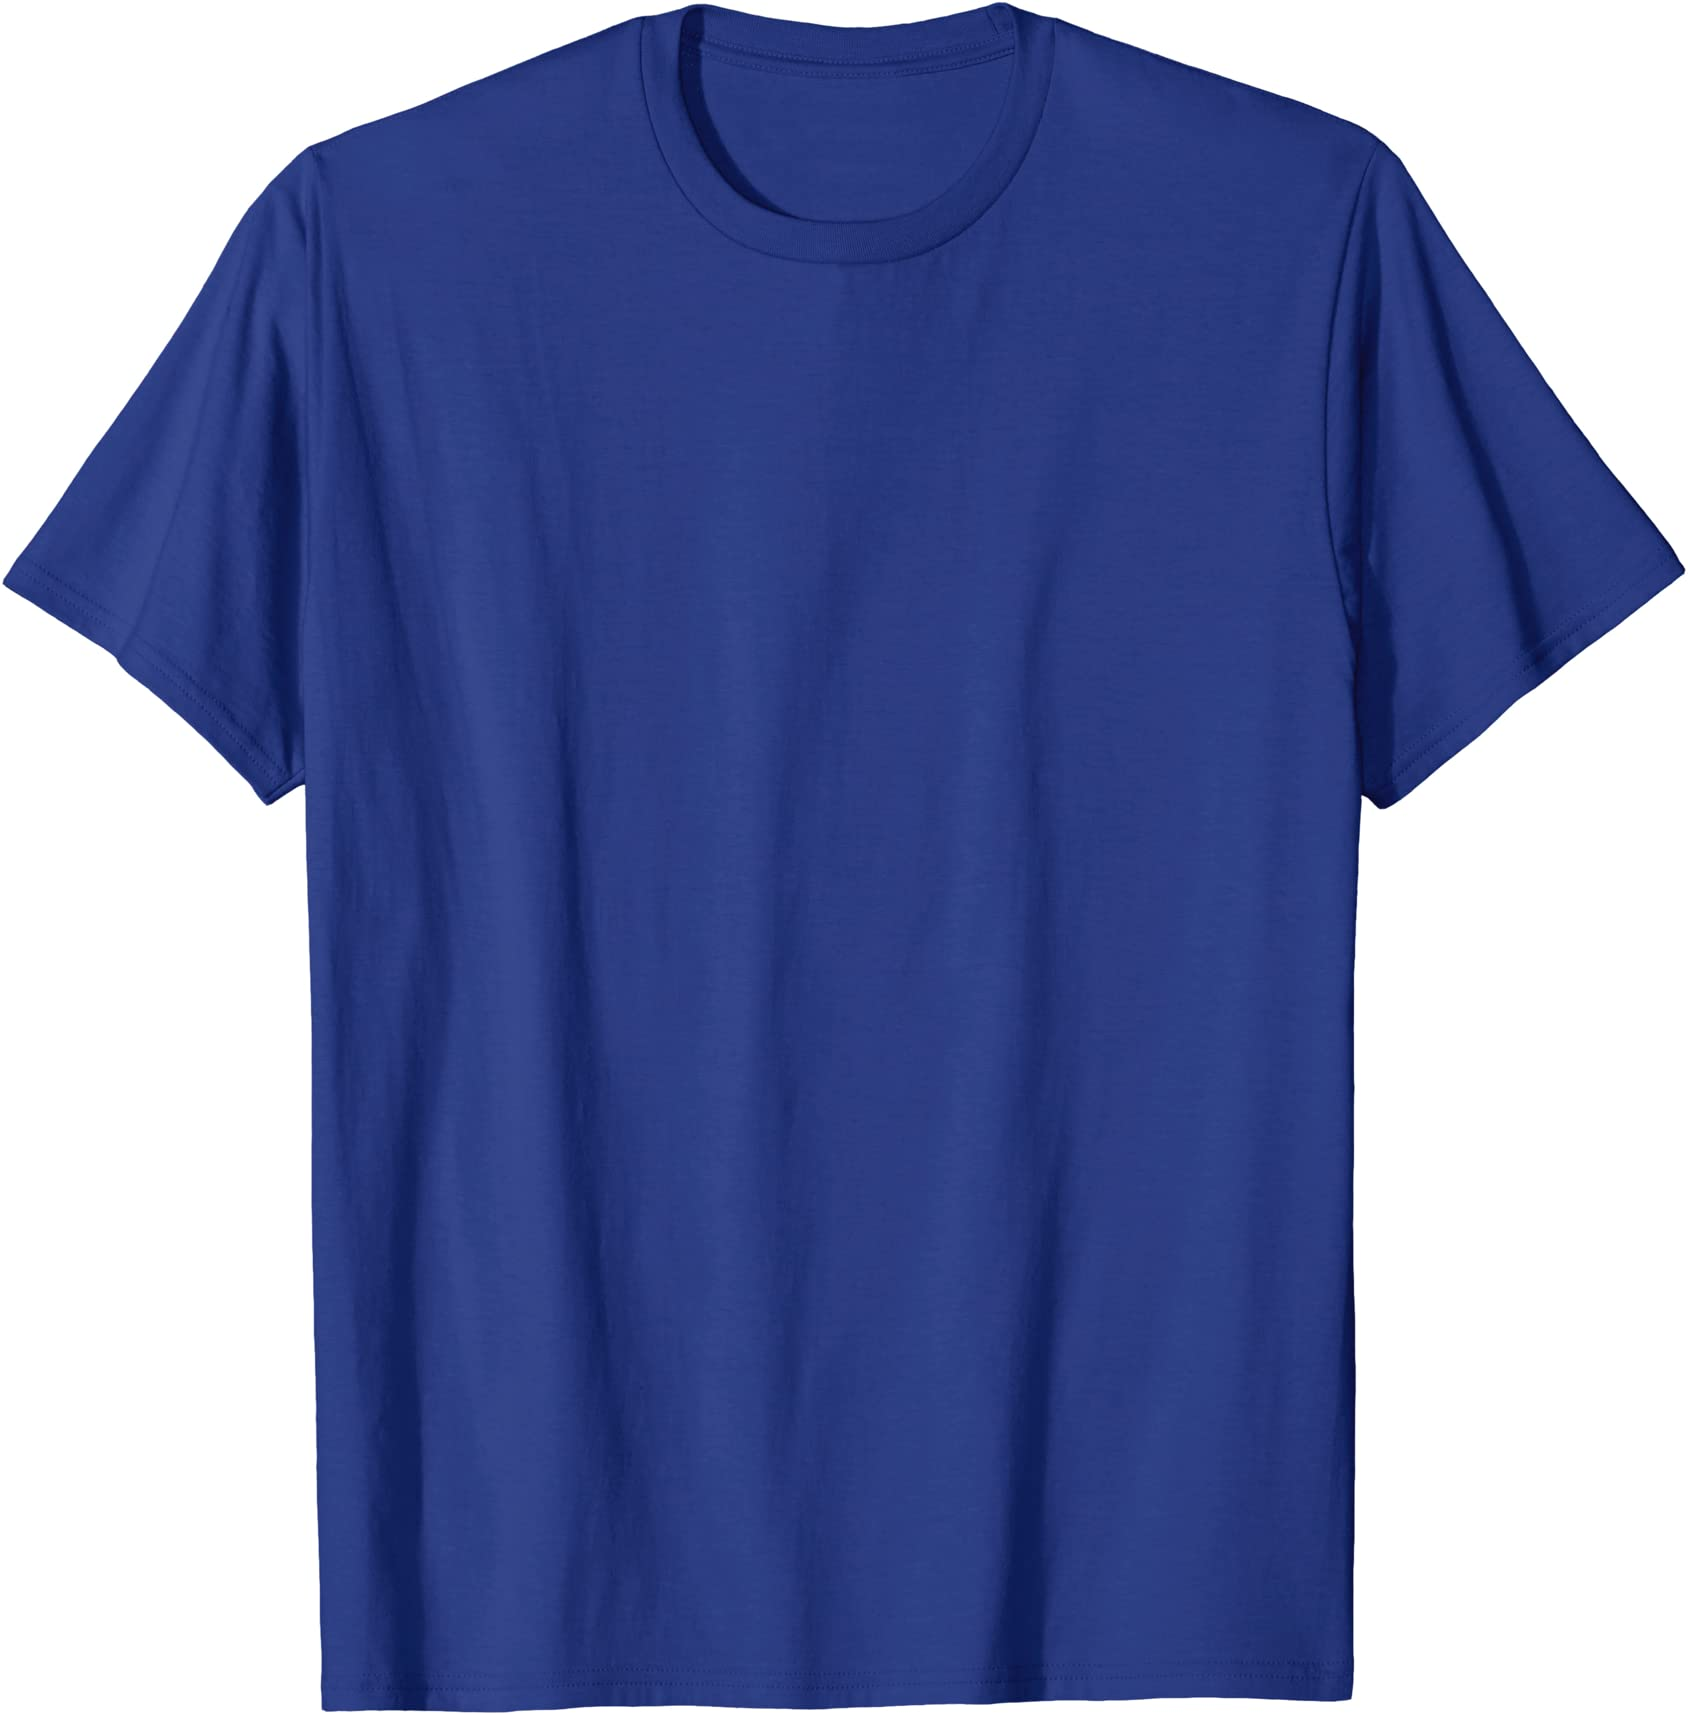 Brexit Is Coming T-Shirt Exit Europe Ladies Top Leave European Union